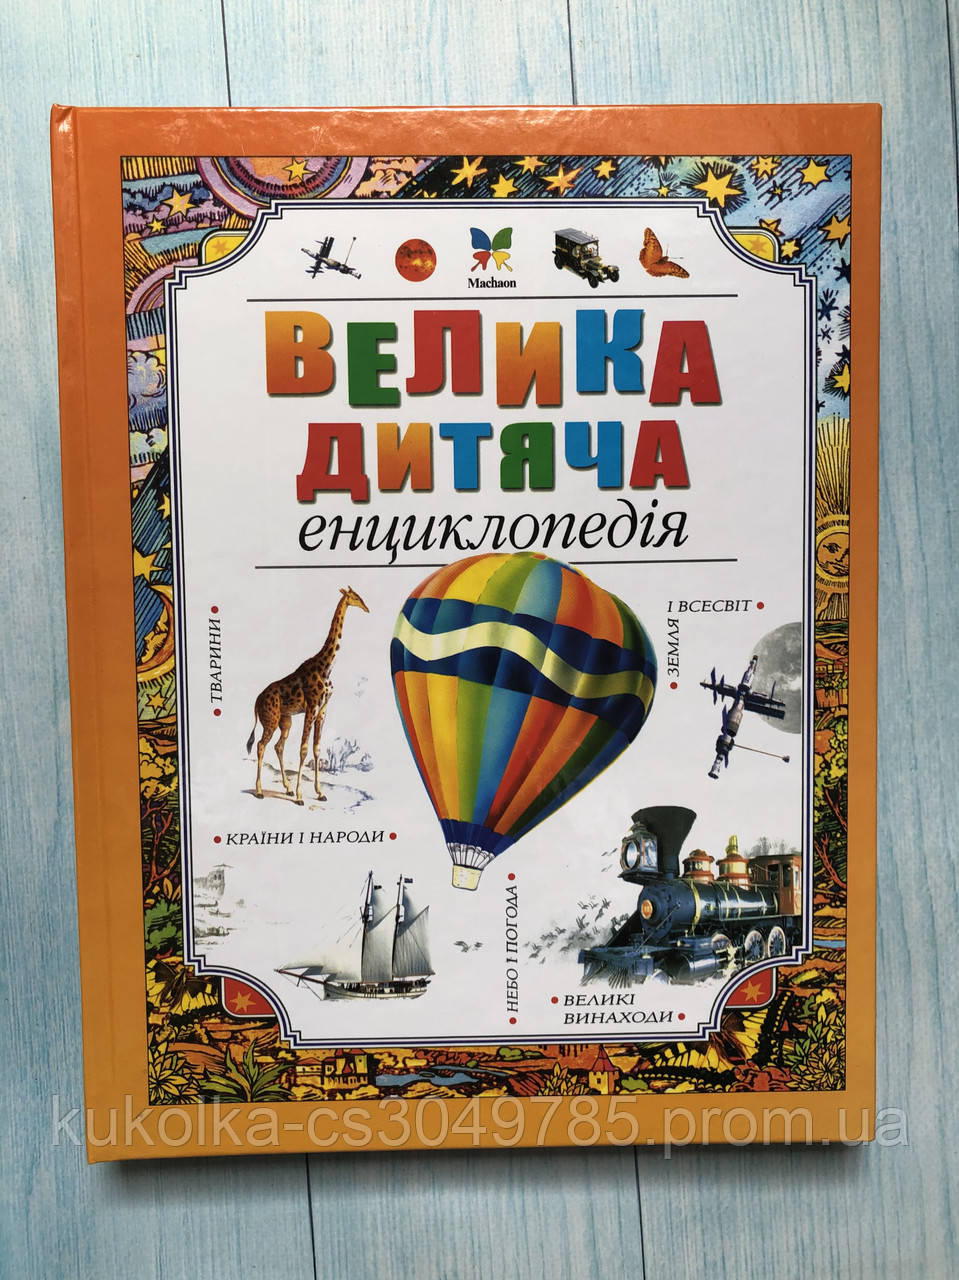 «Велика дитяча енциклопедія» Machaon, фото 1